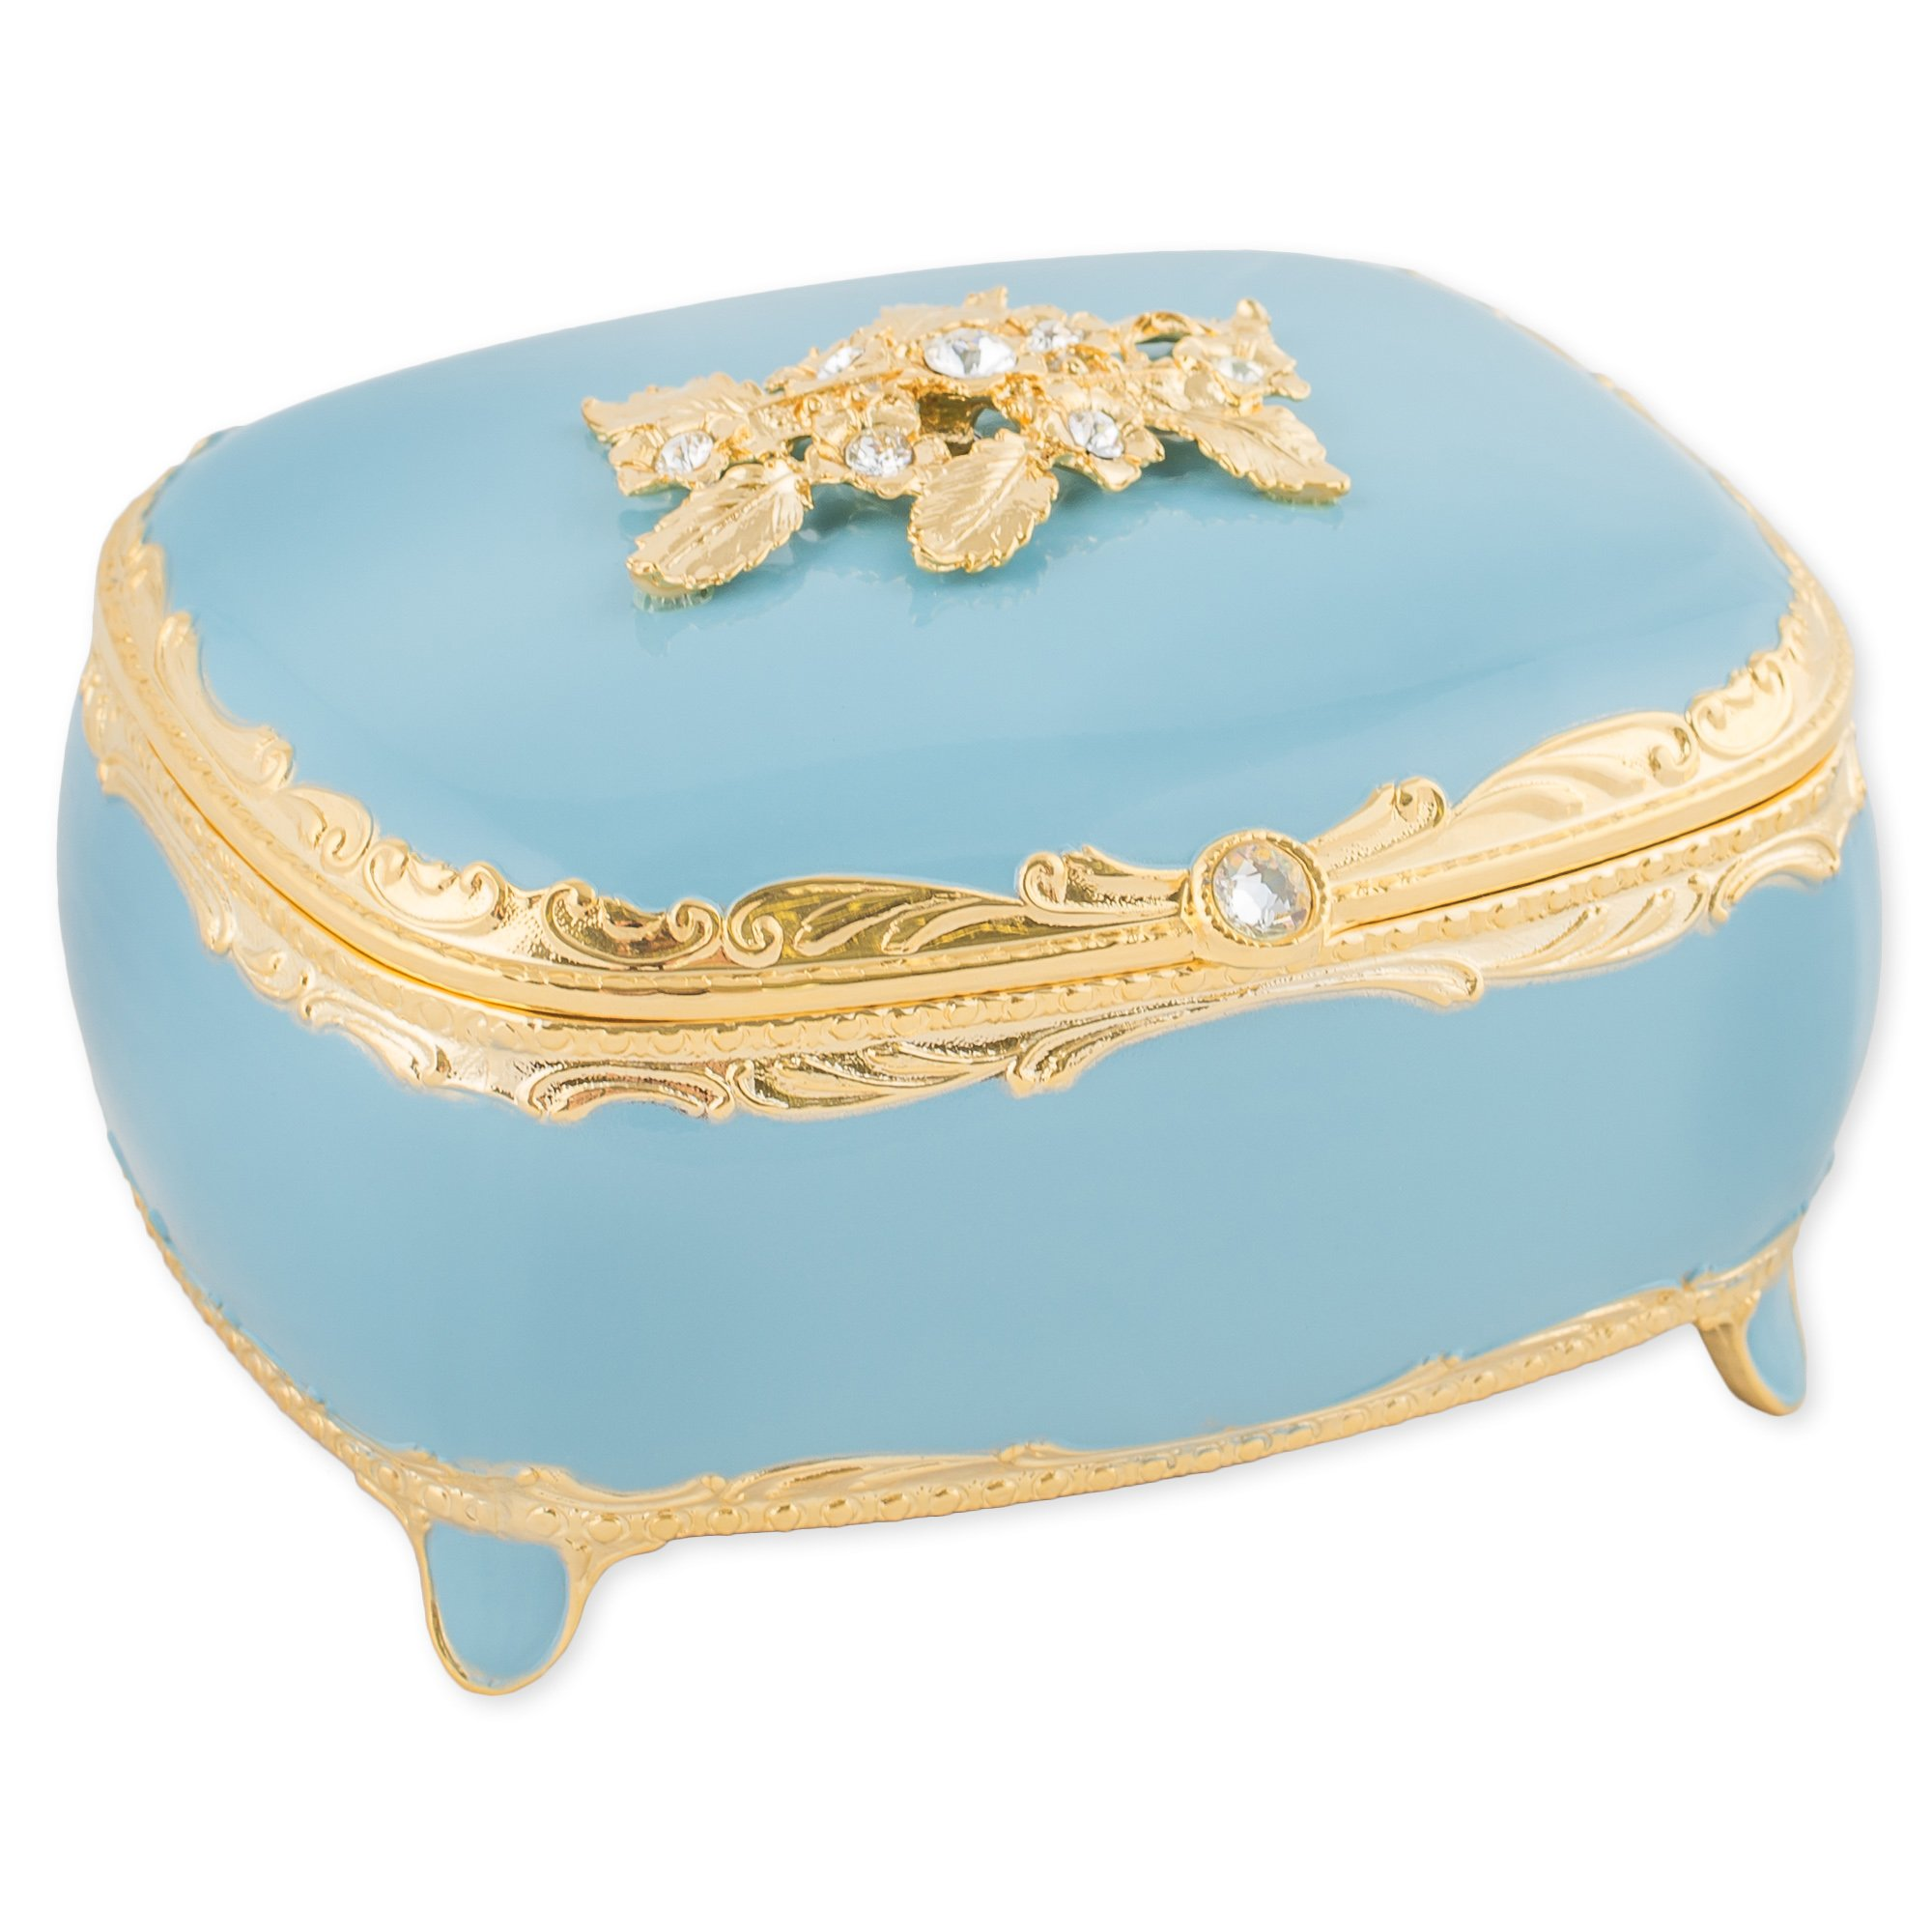 Blue with Swarovski Crystals and Gold Accents Metal Jewelry Music Box Plays Fur Elise